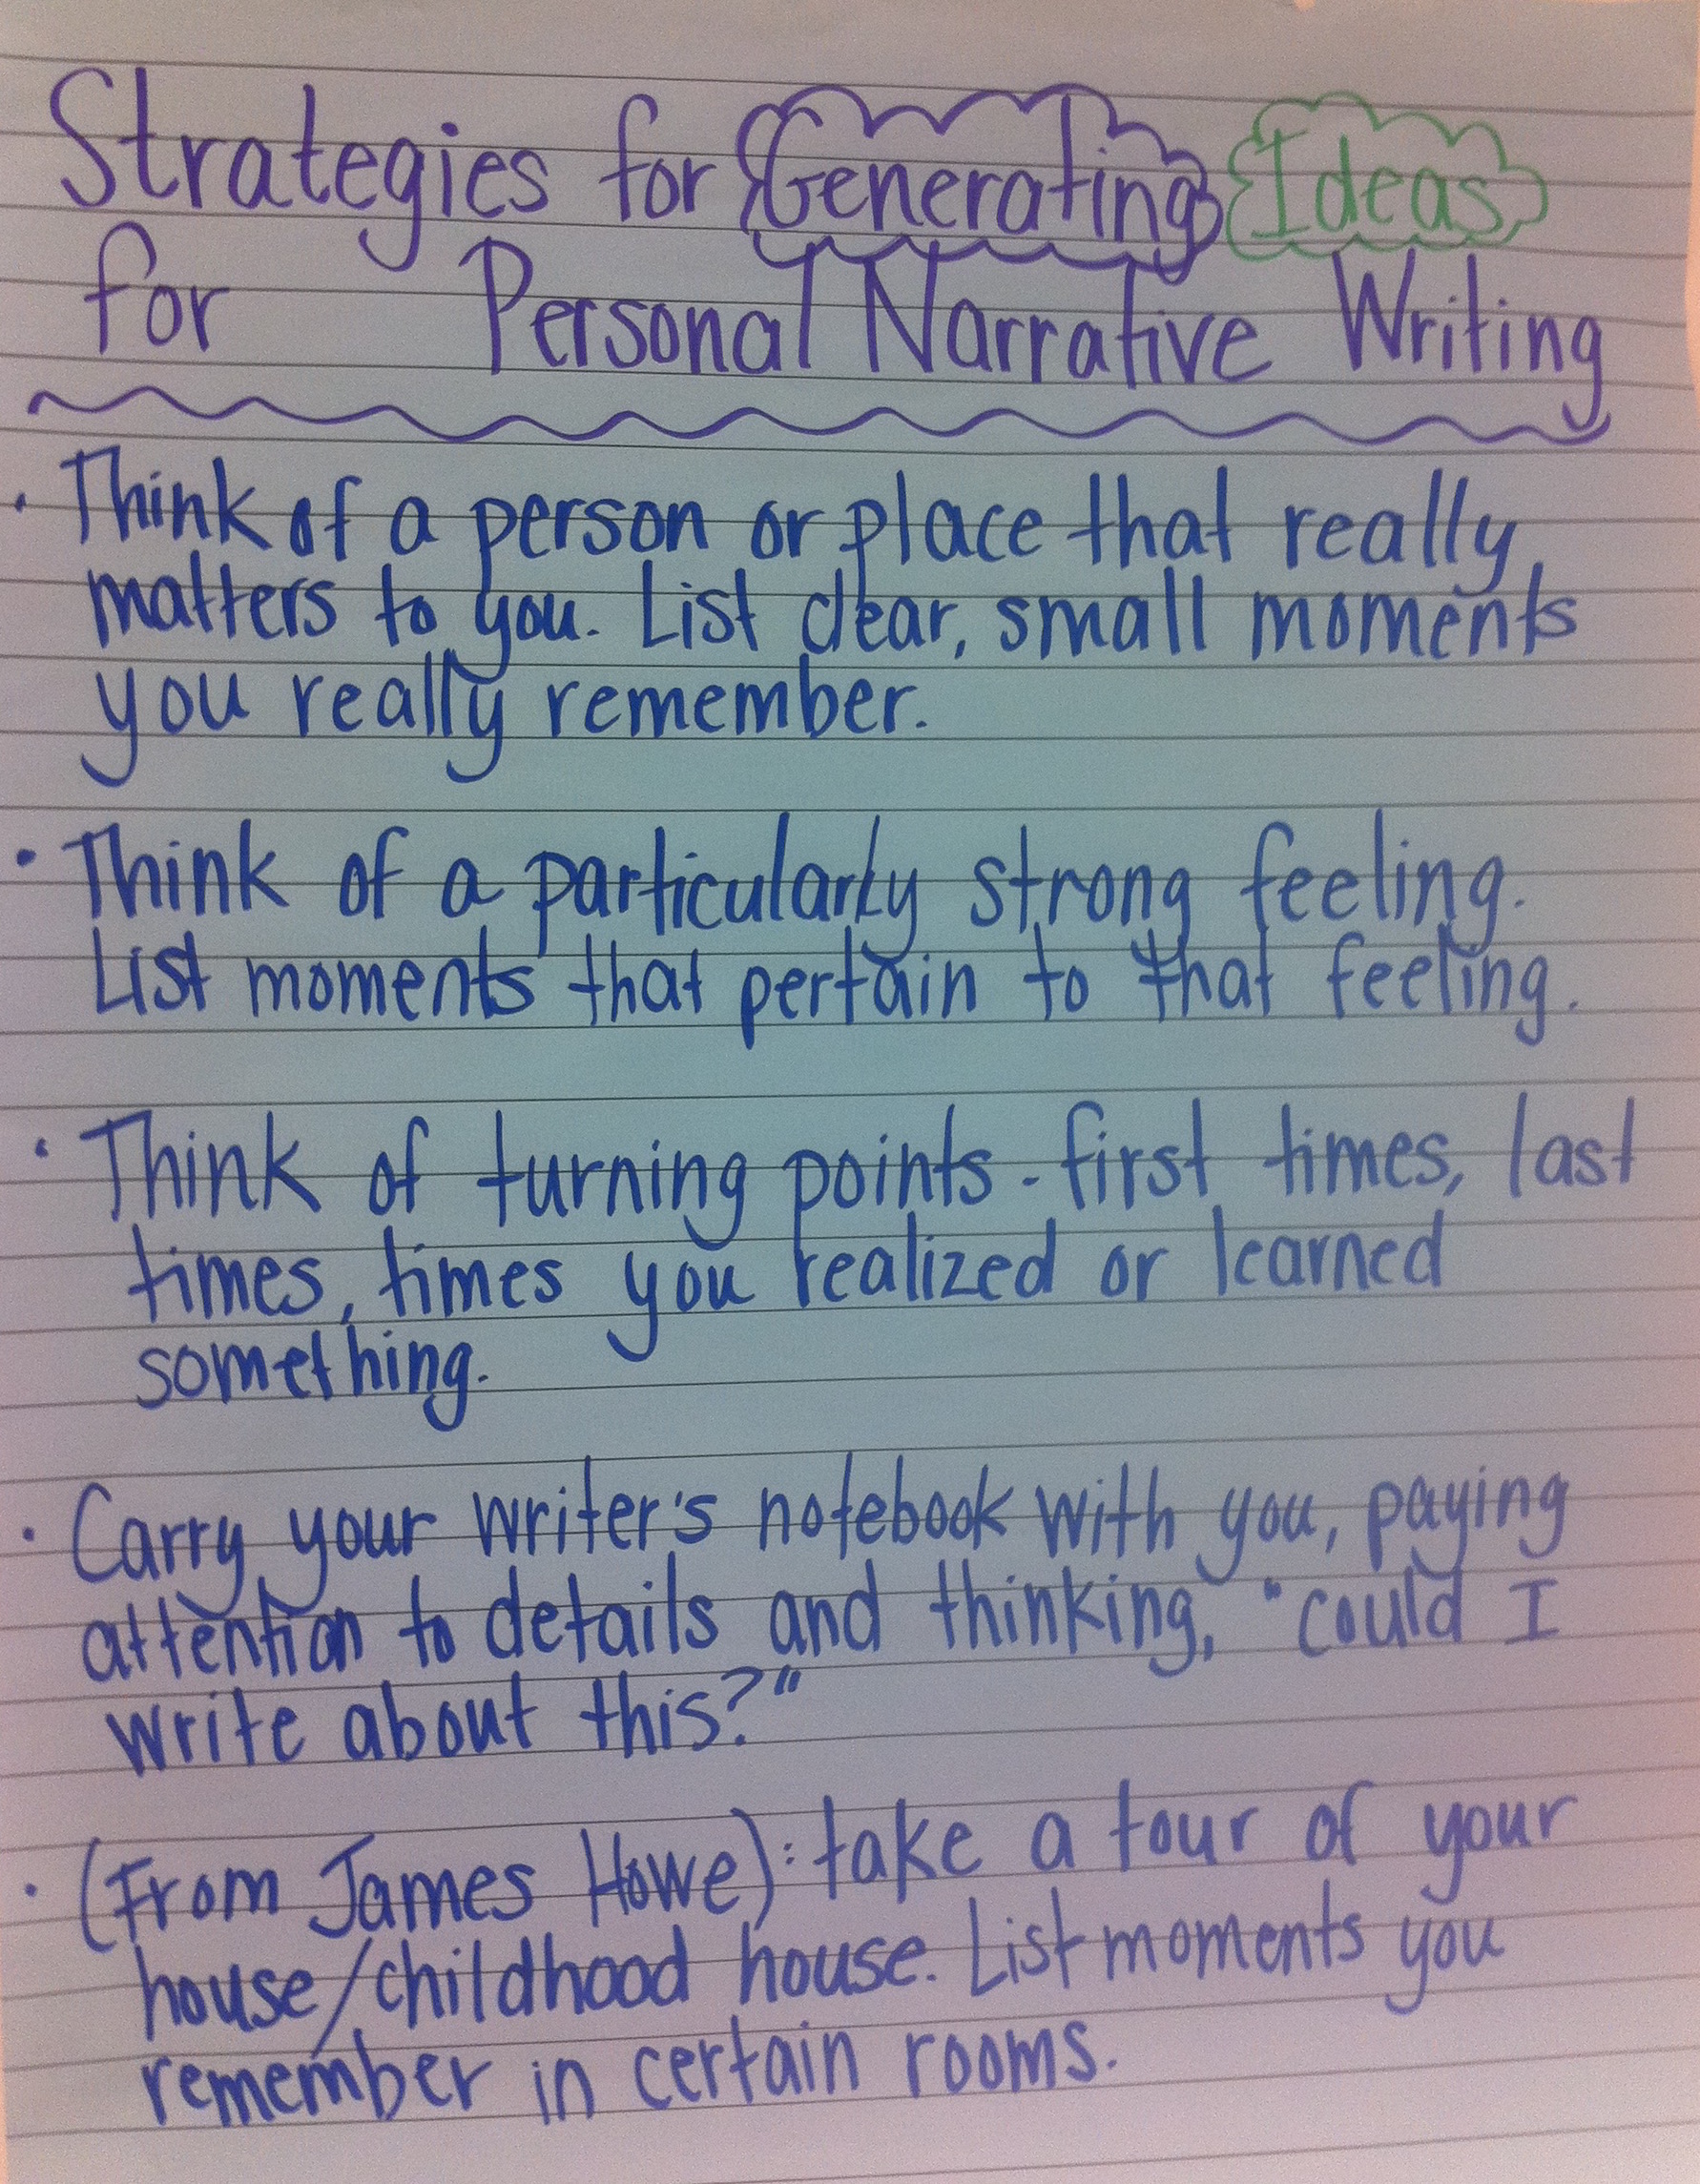 Personal narrative essay about your life